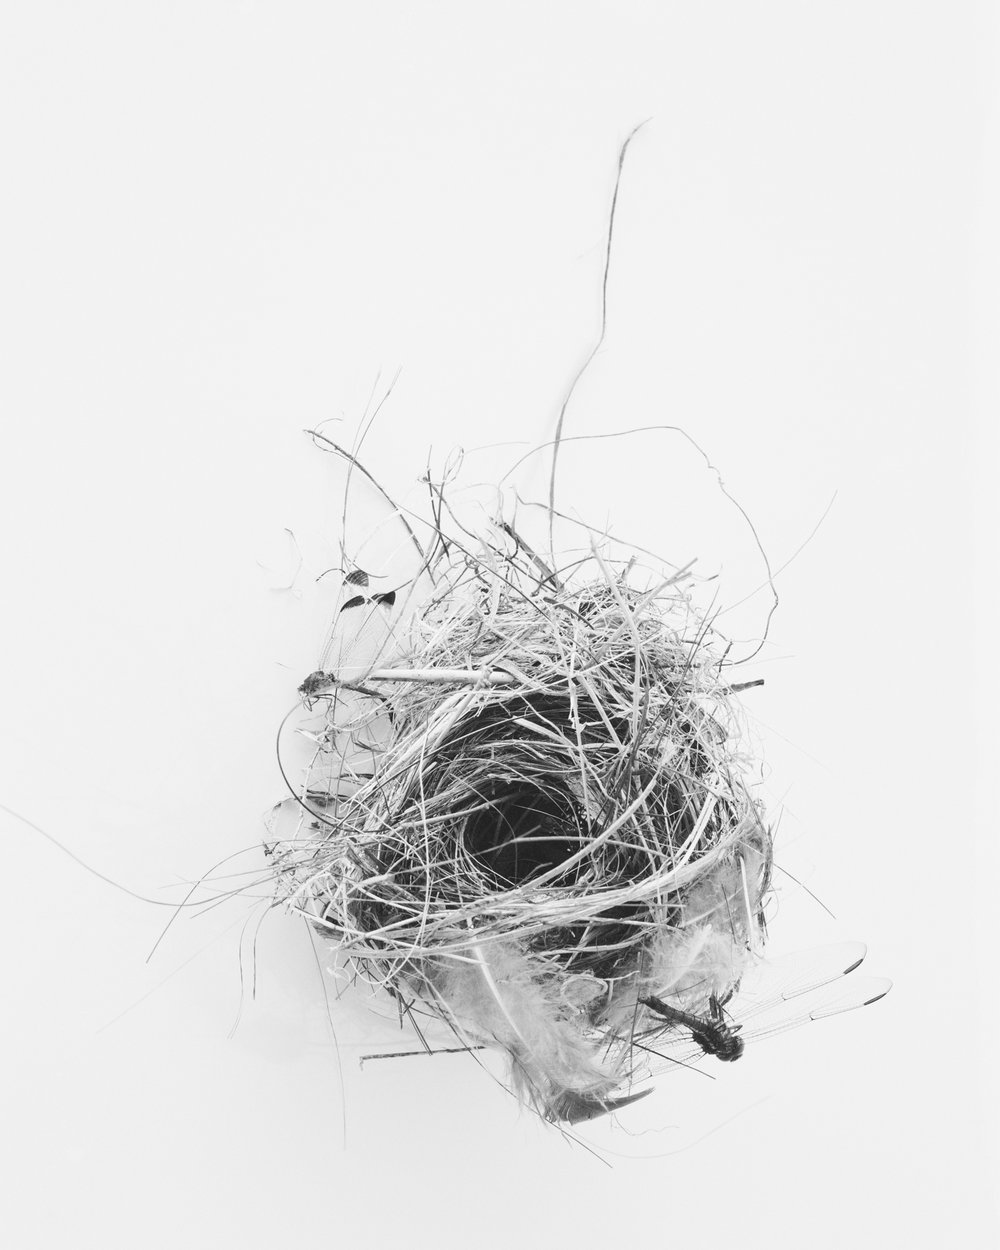 Objects of interest: bird's nest with dragonfly, March, 2014, Itaparica, Brazil. 2014/2018